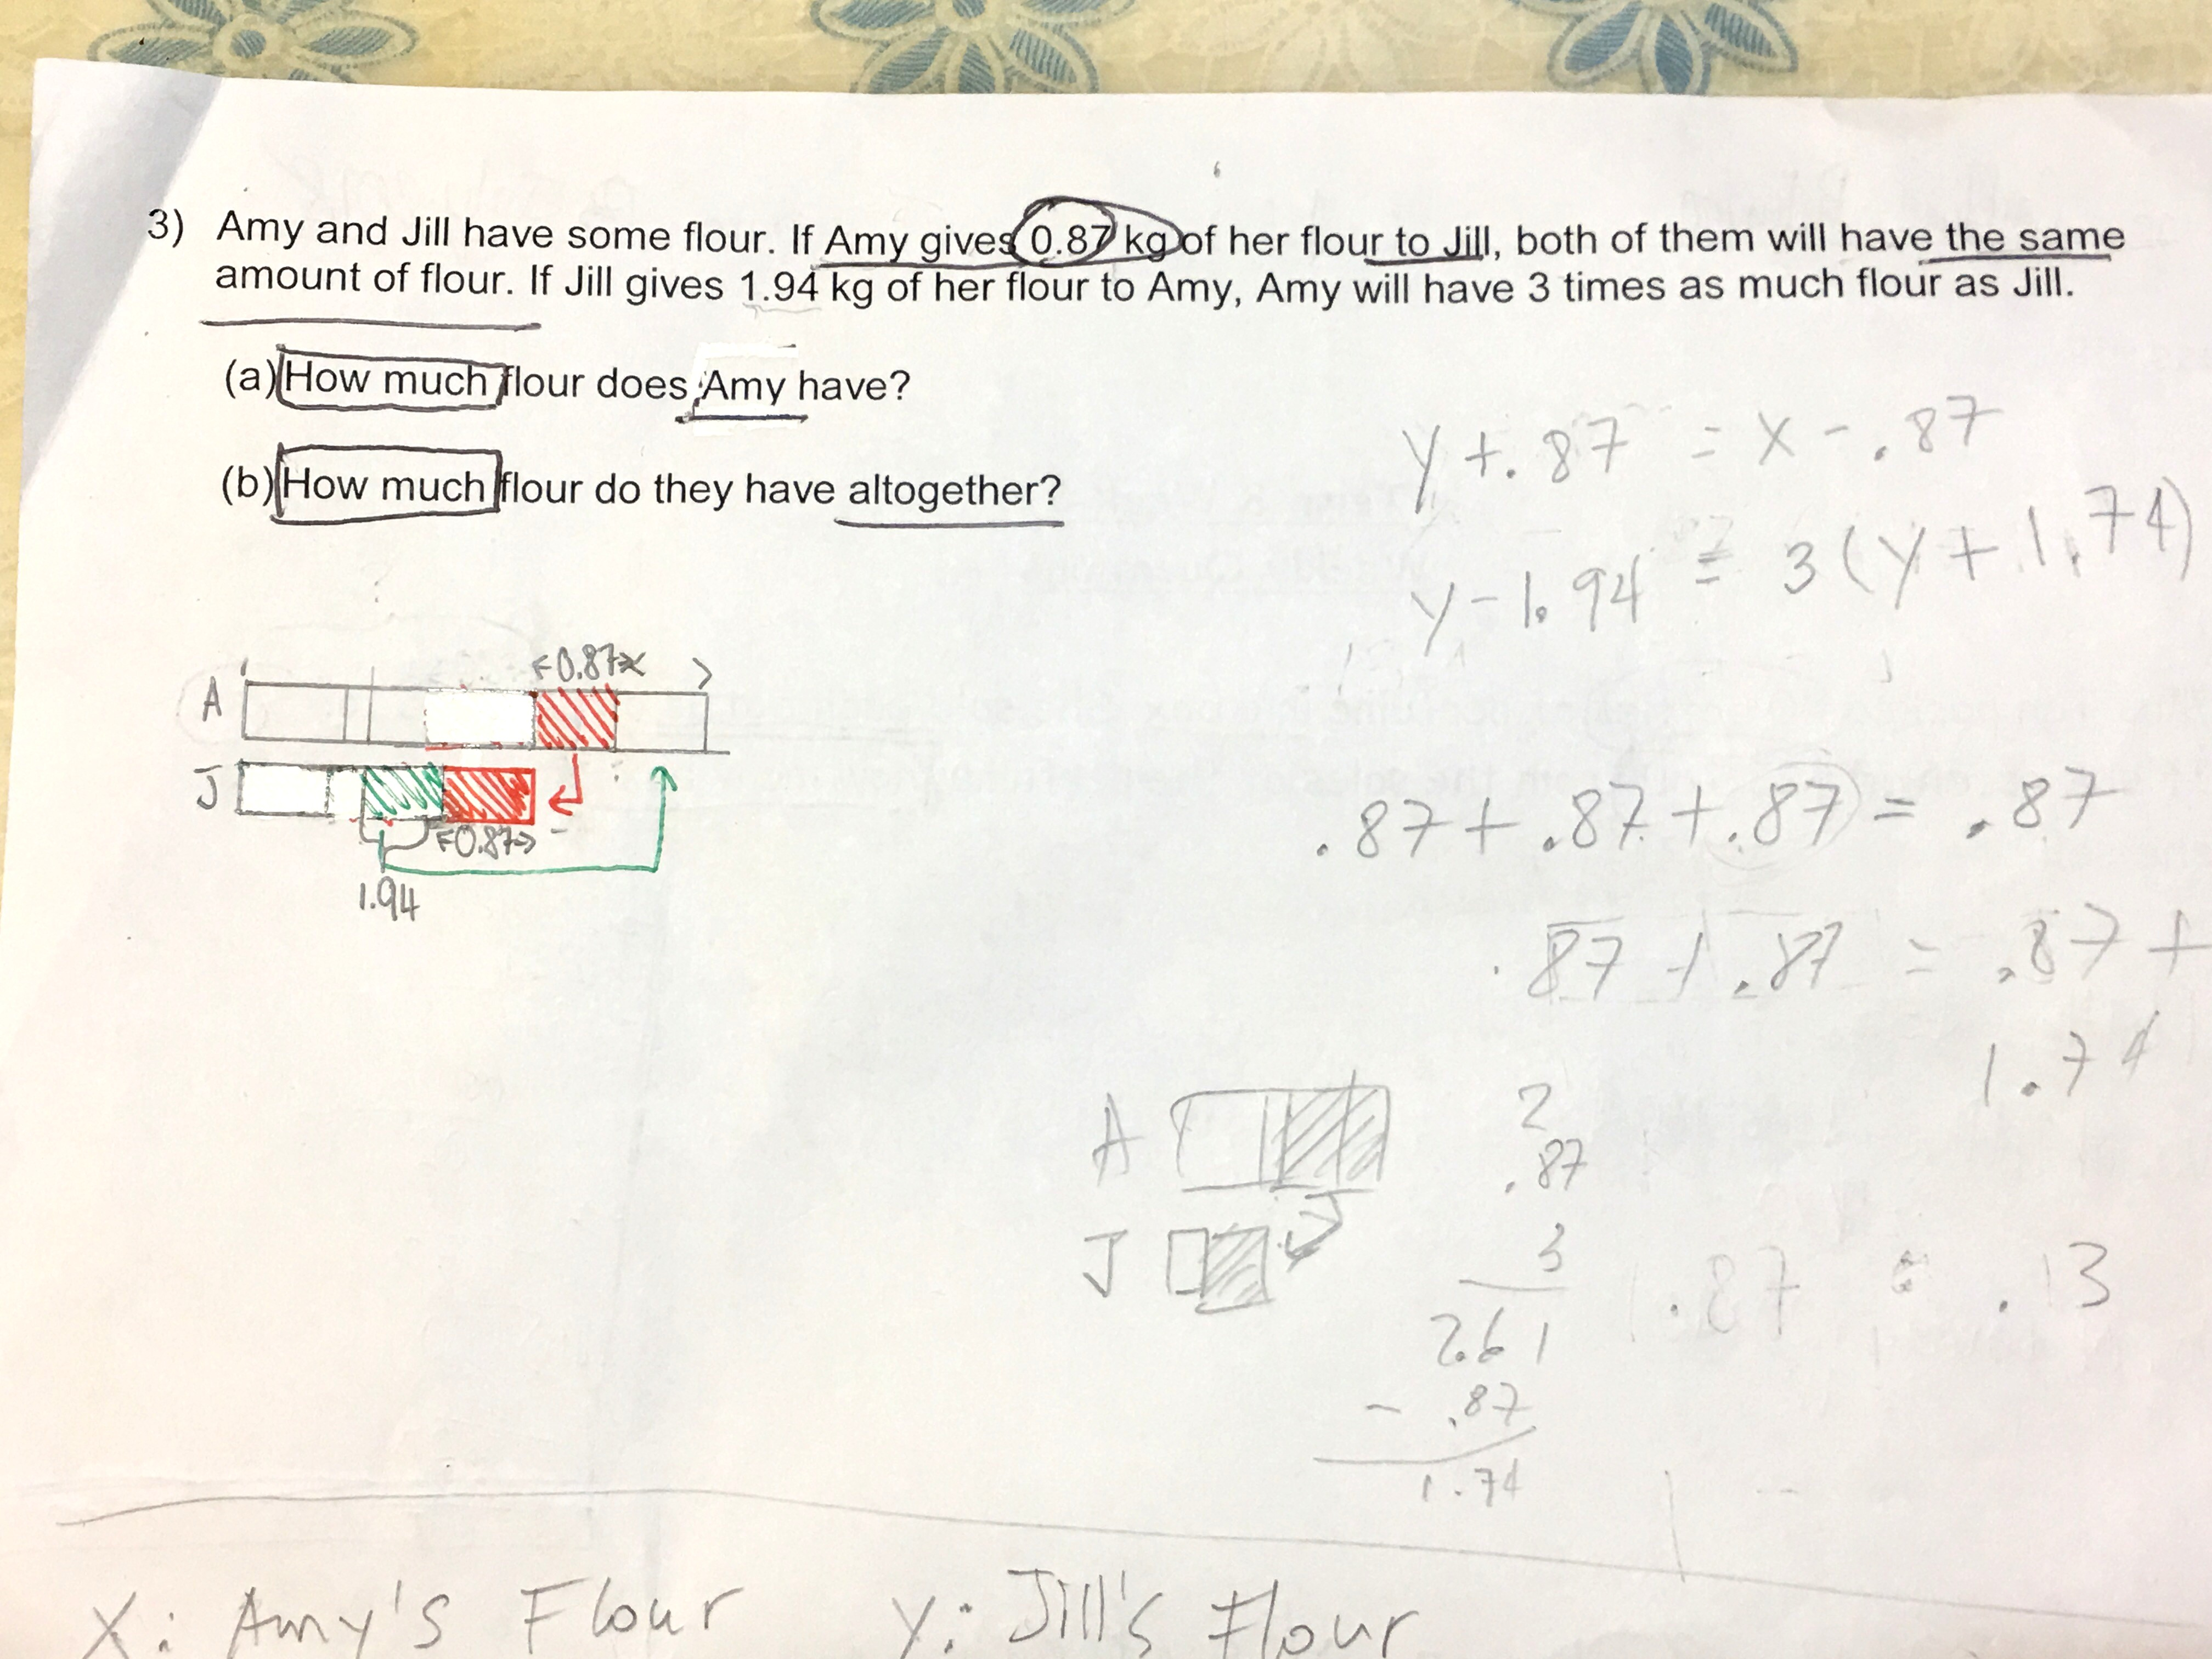 Primary 5 Maths Practice - Singapore Homework Questions